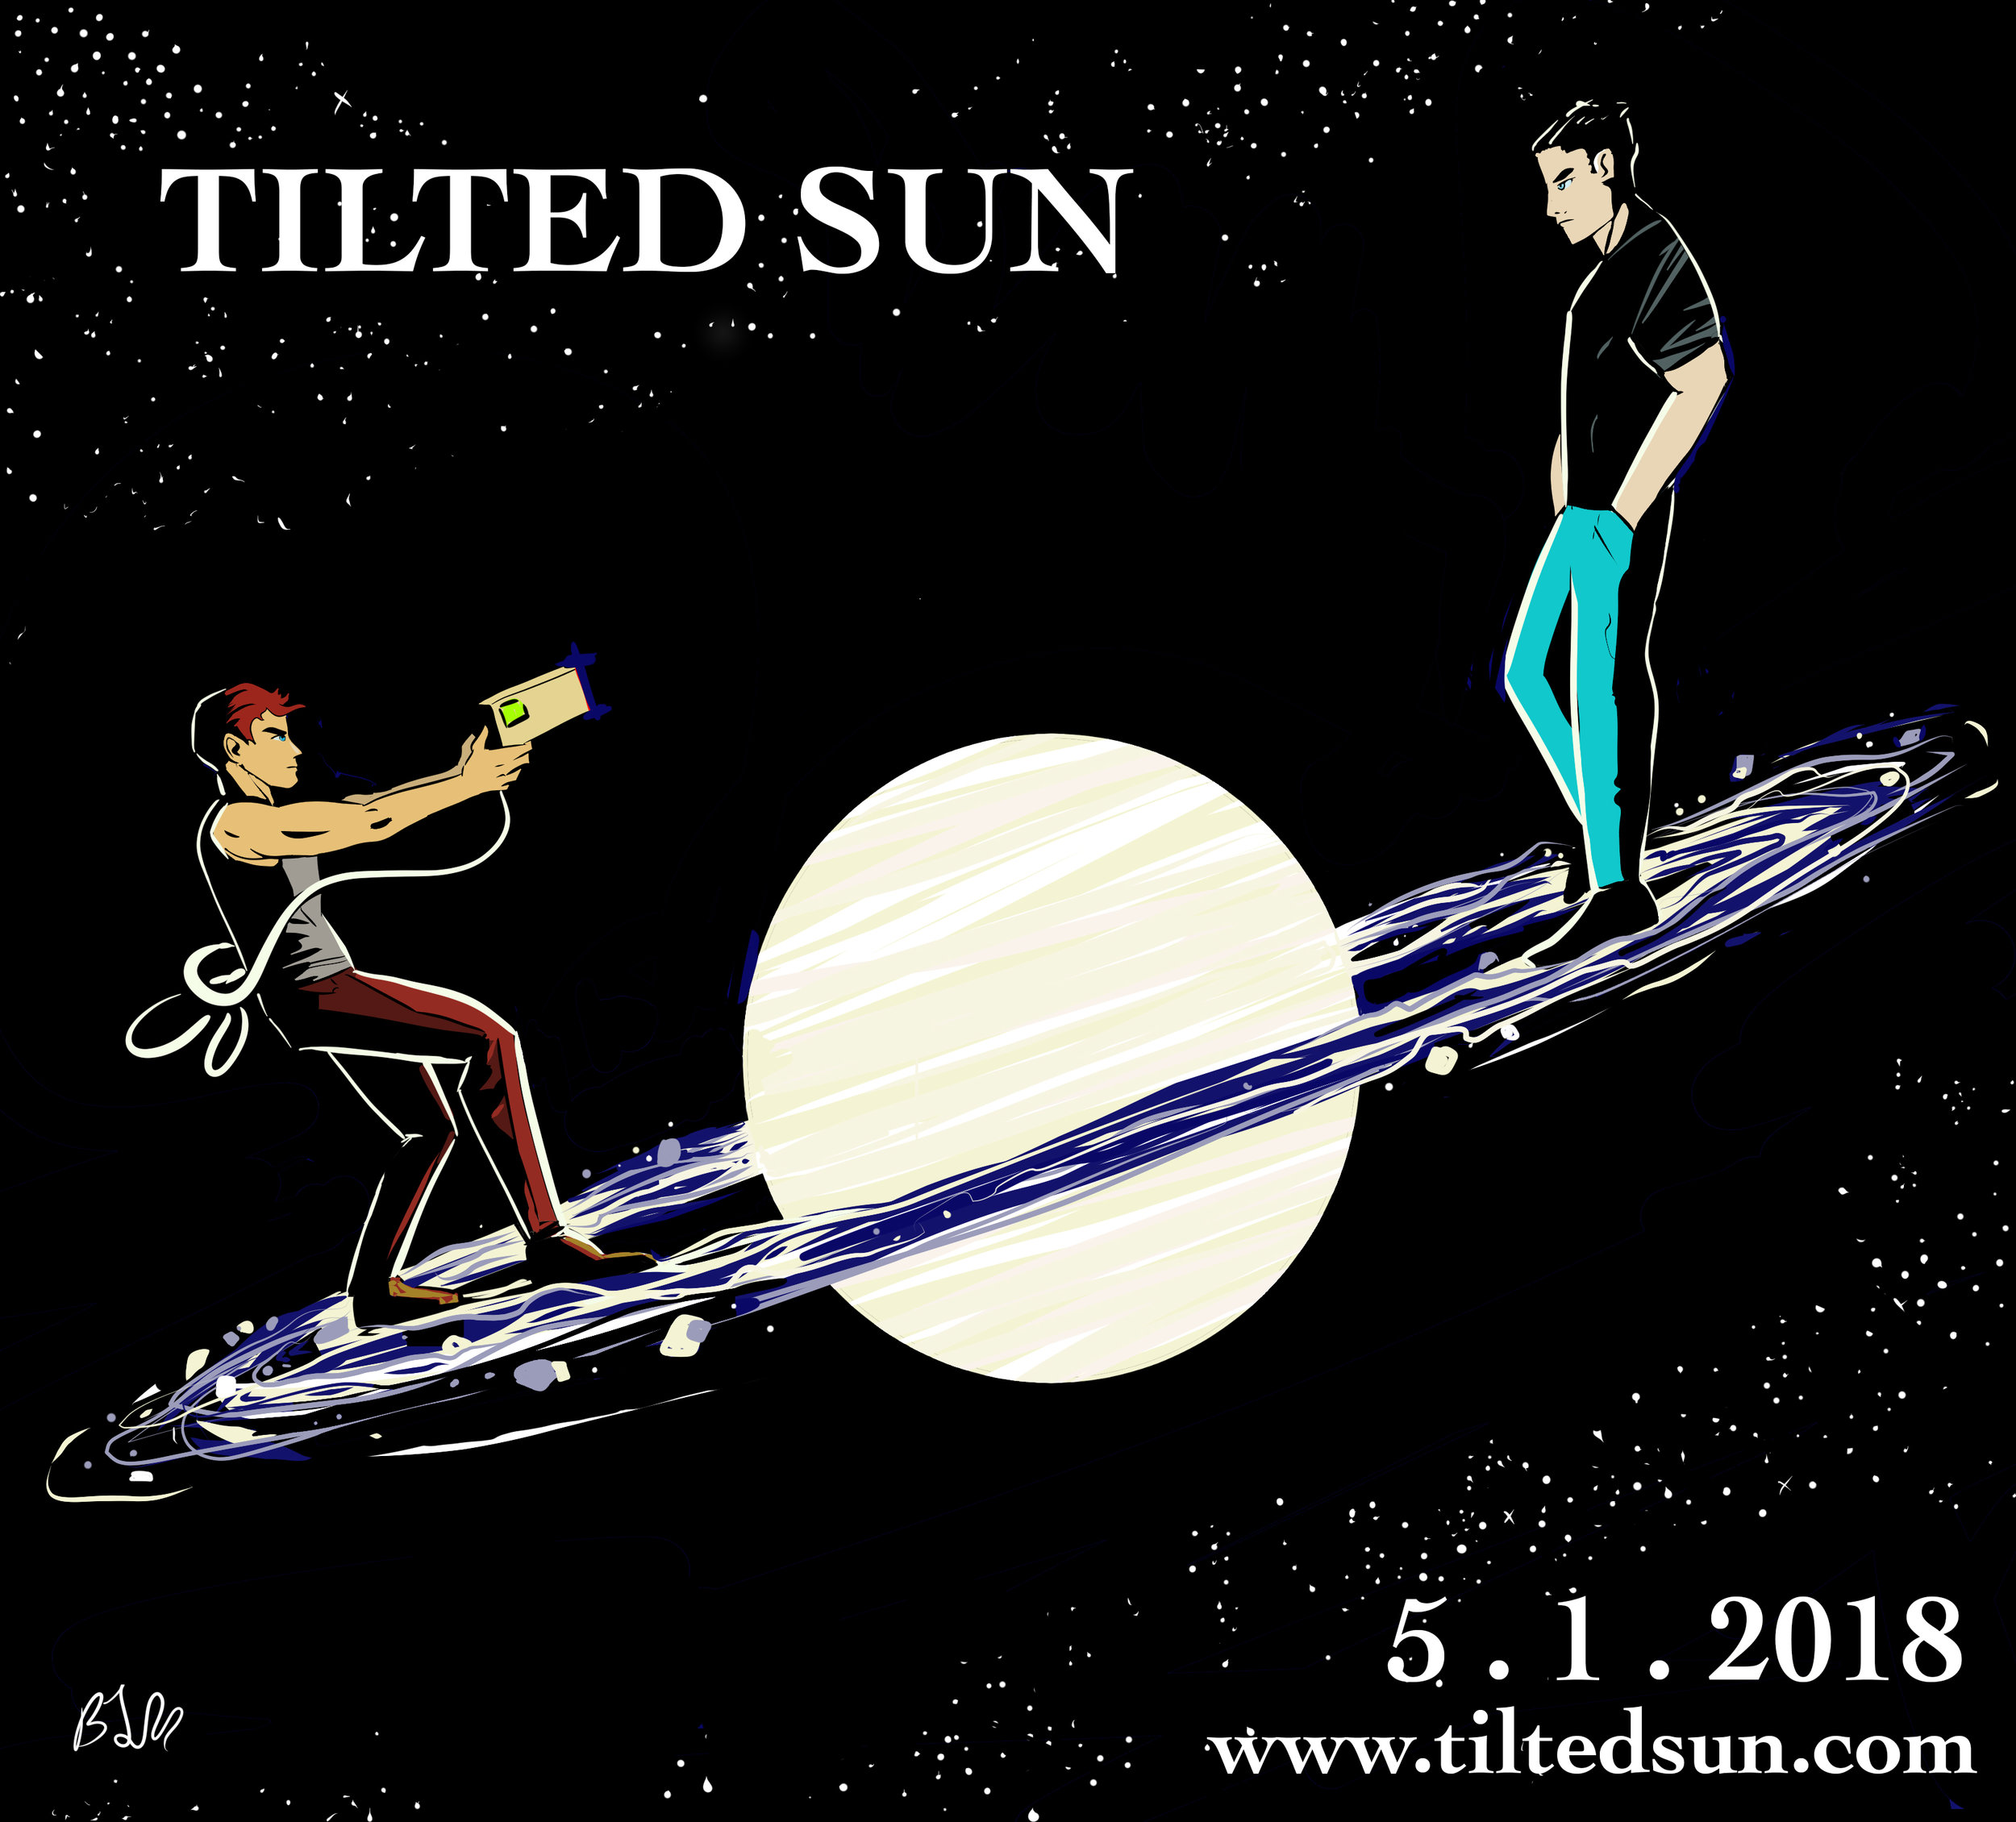 Tilted Sun Cover Release Date.jpg